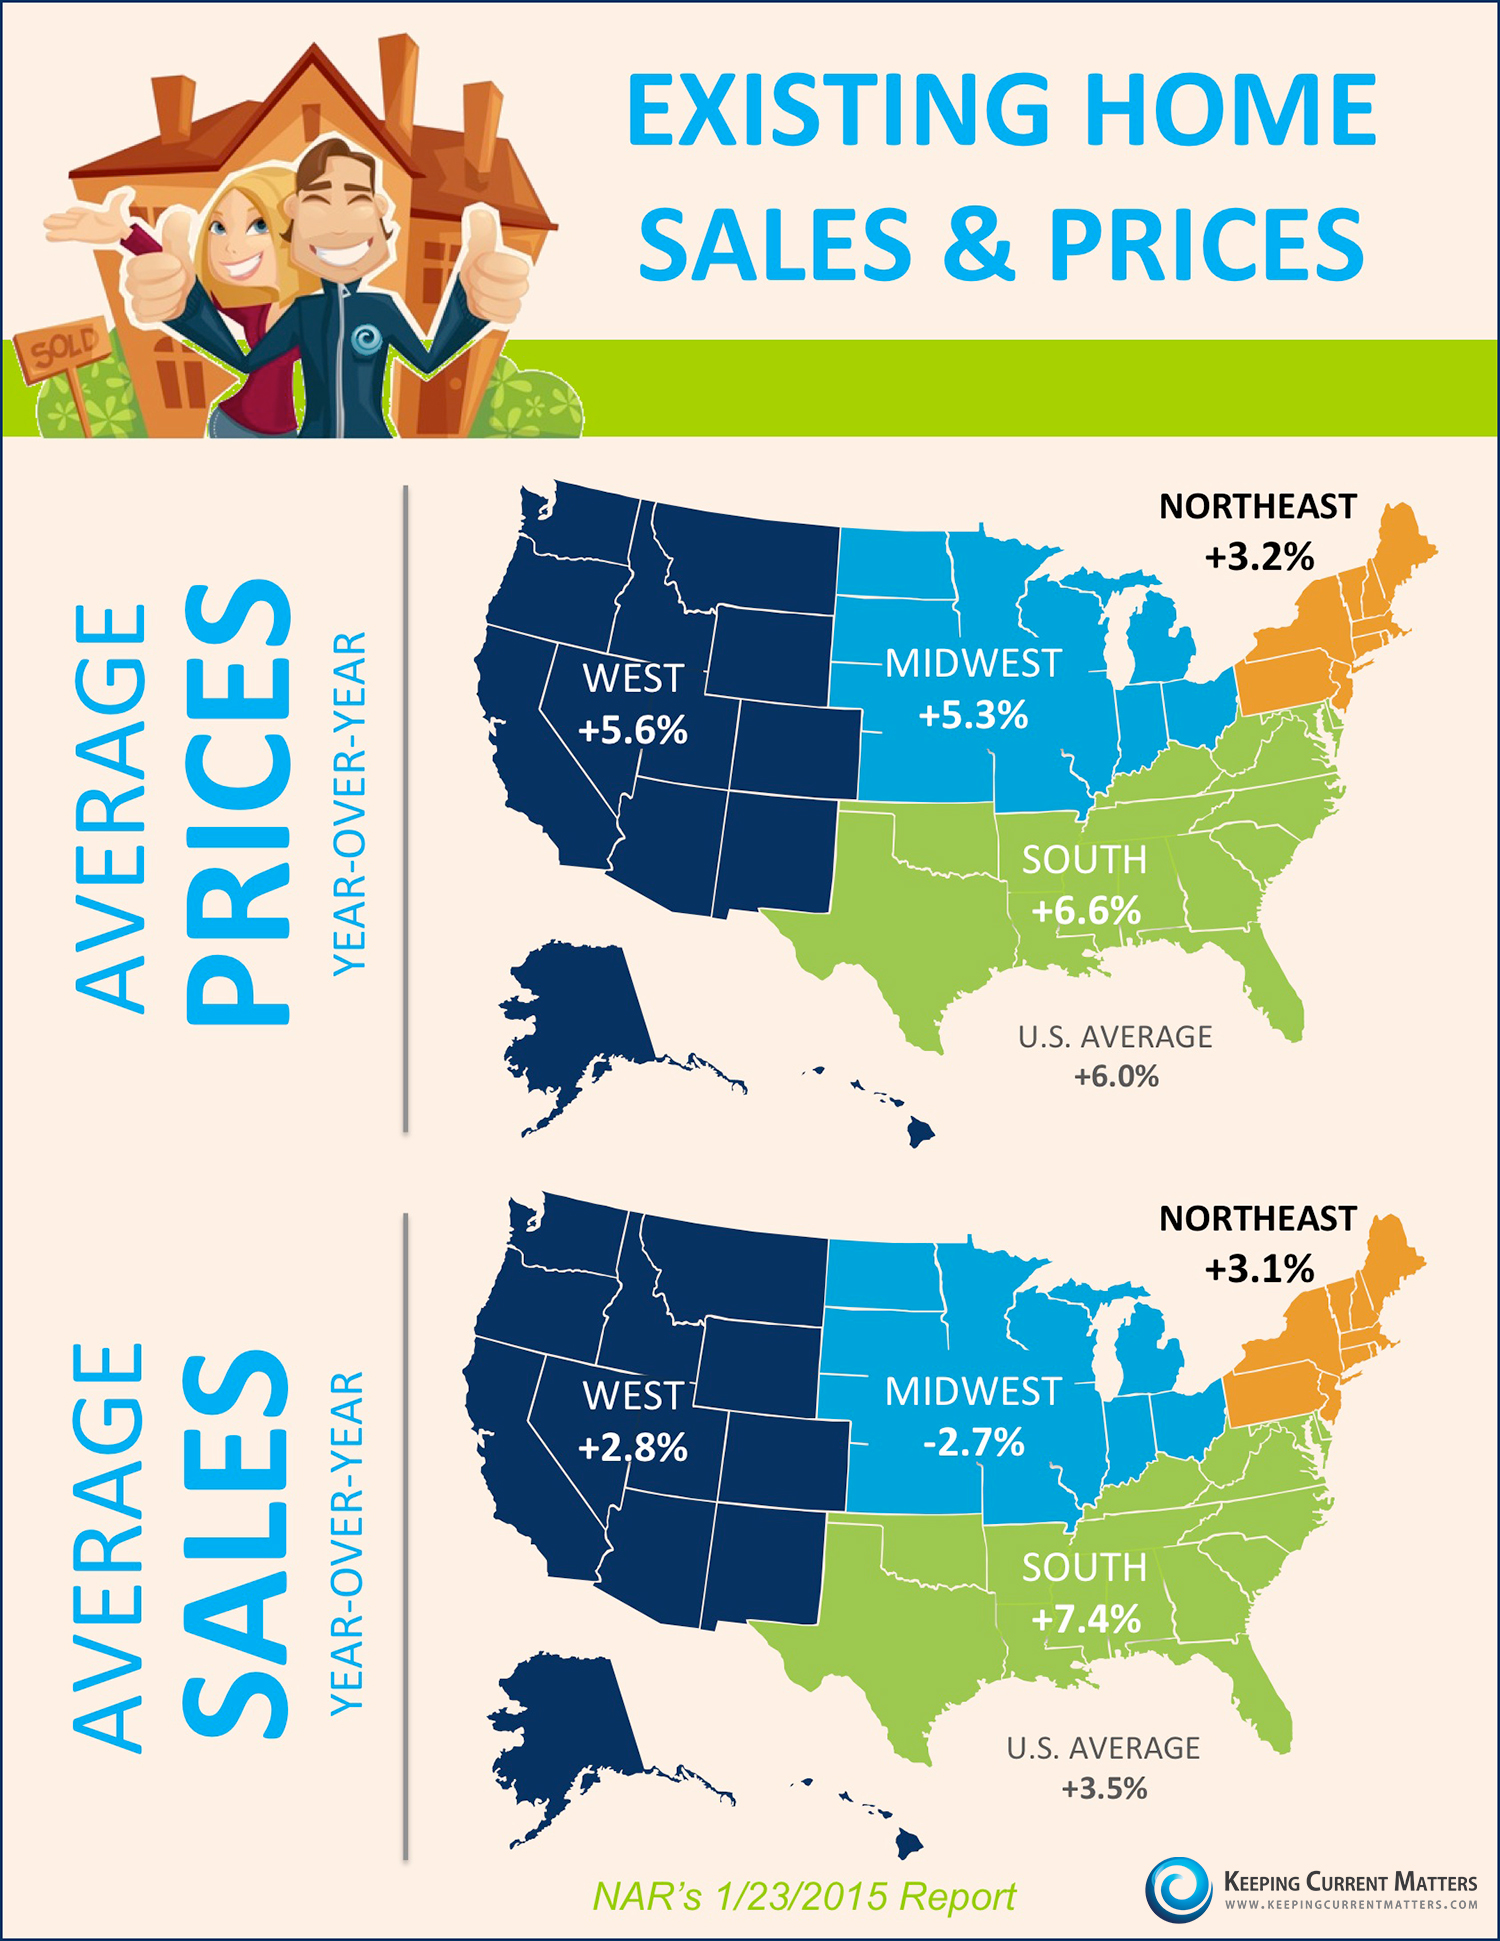 Existing Home Sales & Prices [INFOGRAPHIC] | Keeping Current Matters